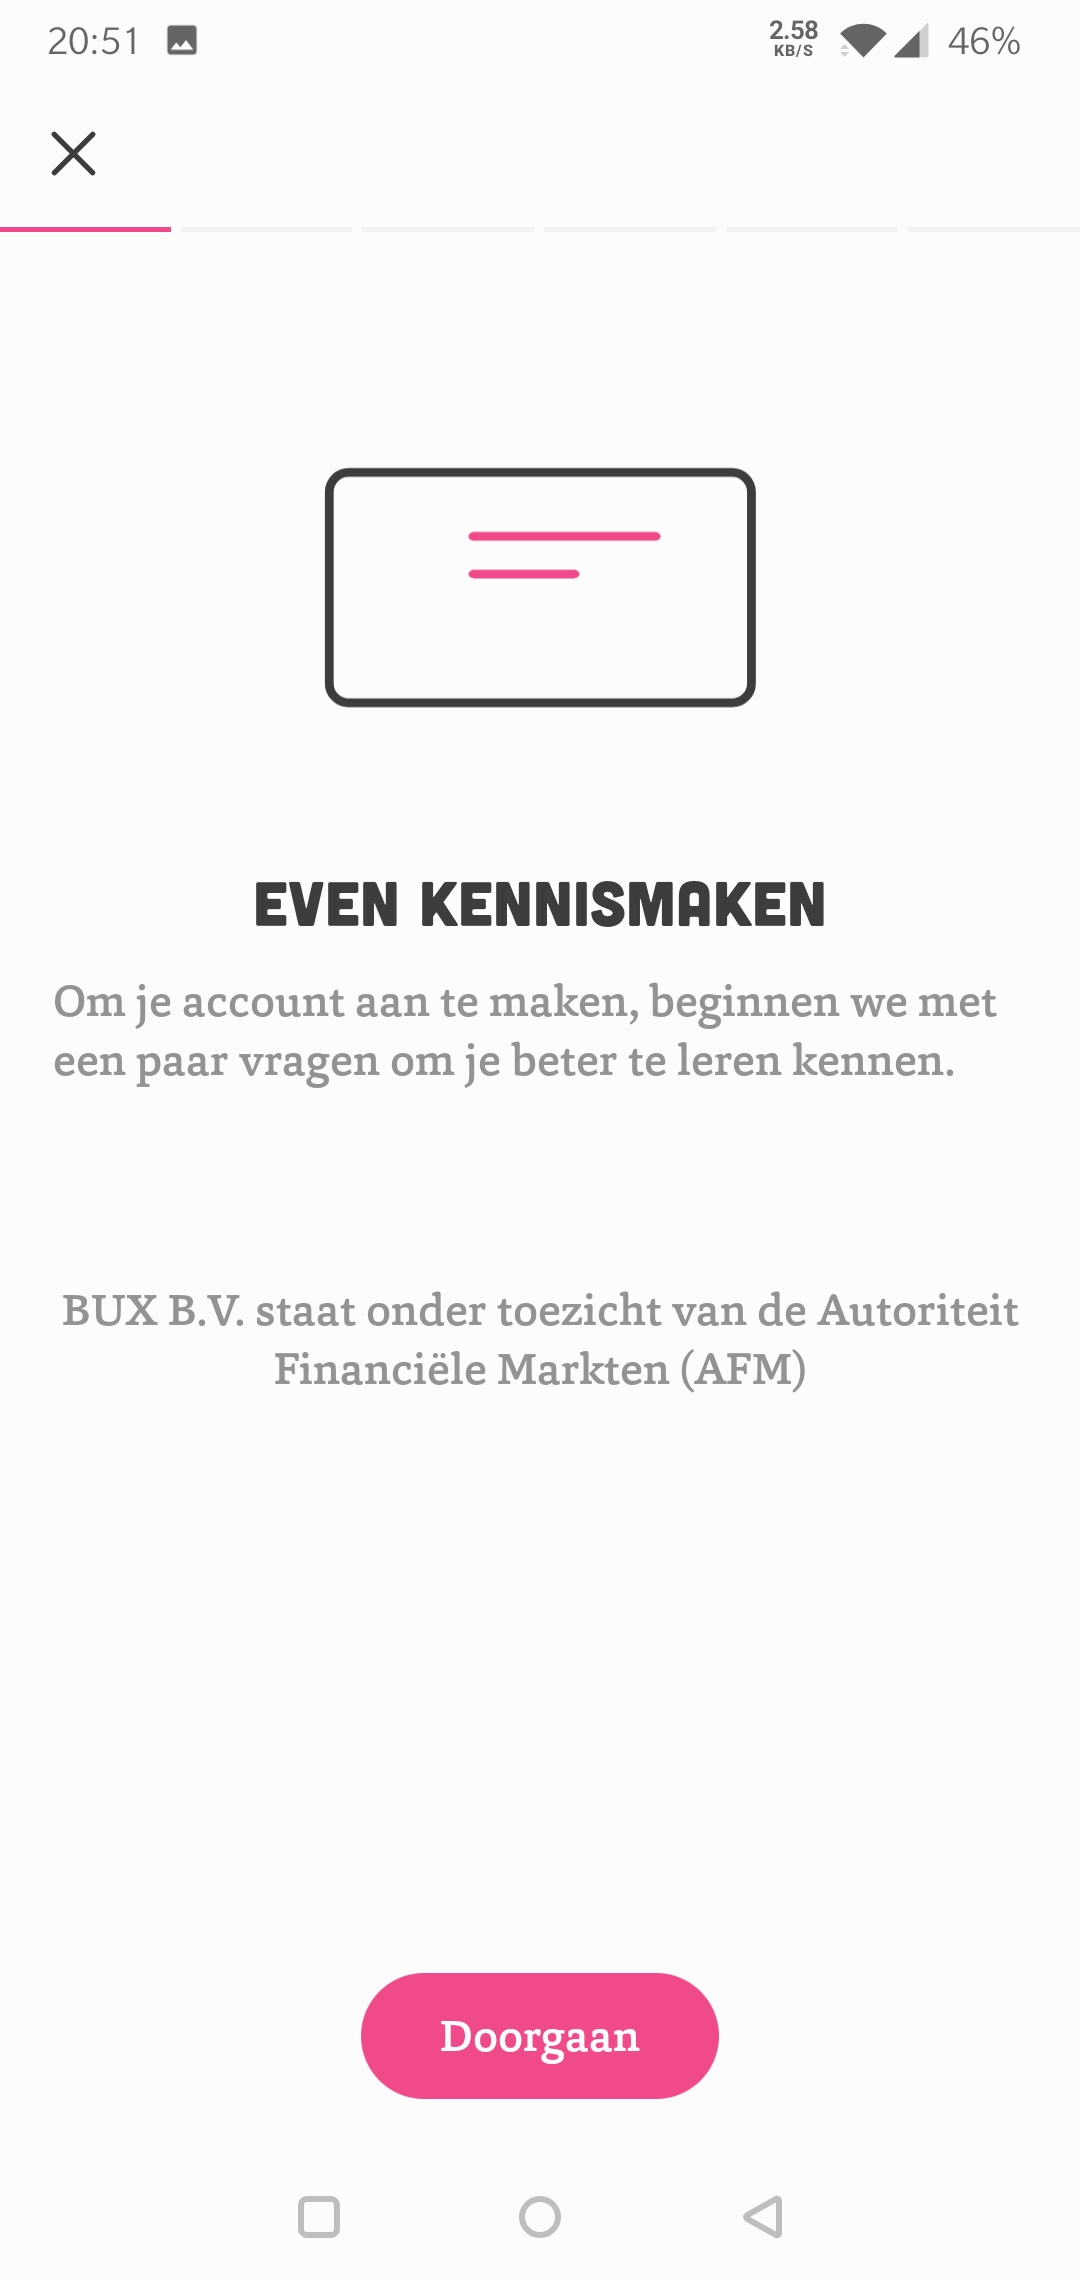 Bux Zero even kennismaken